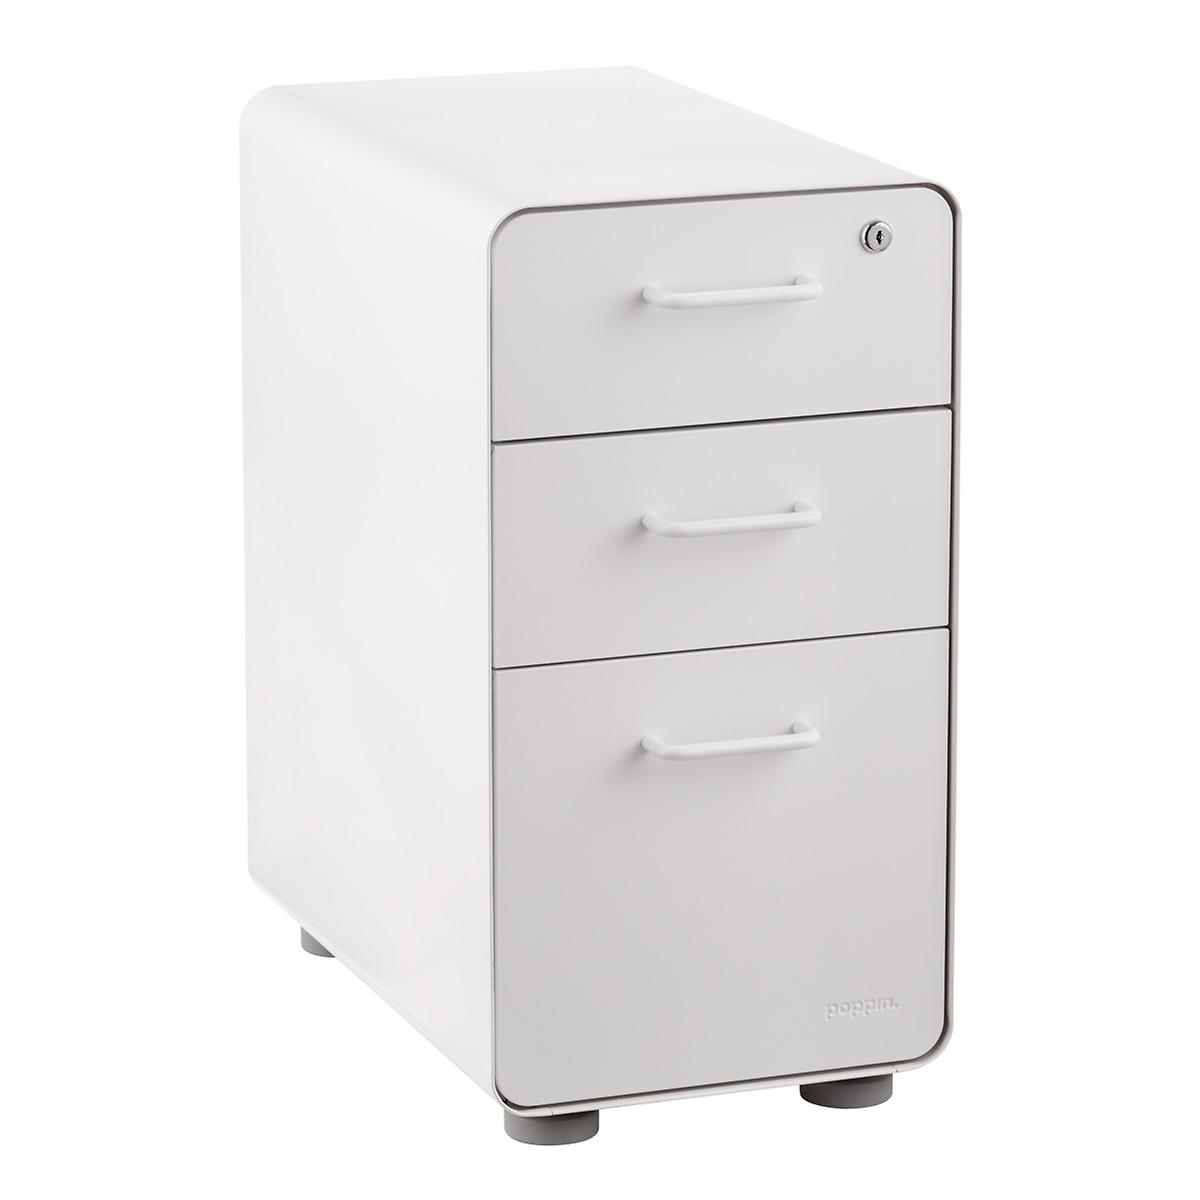 file cabinets, file drawers, filing cabinets & file carts | the drawer file cabinet